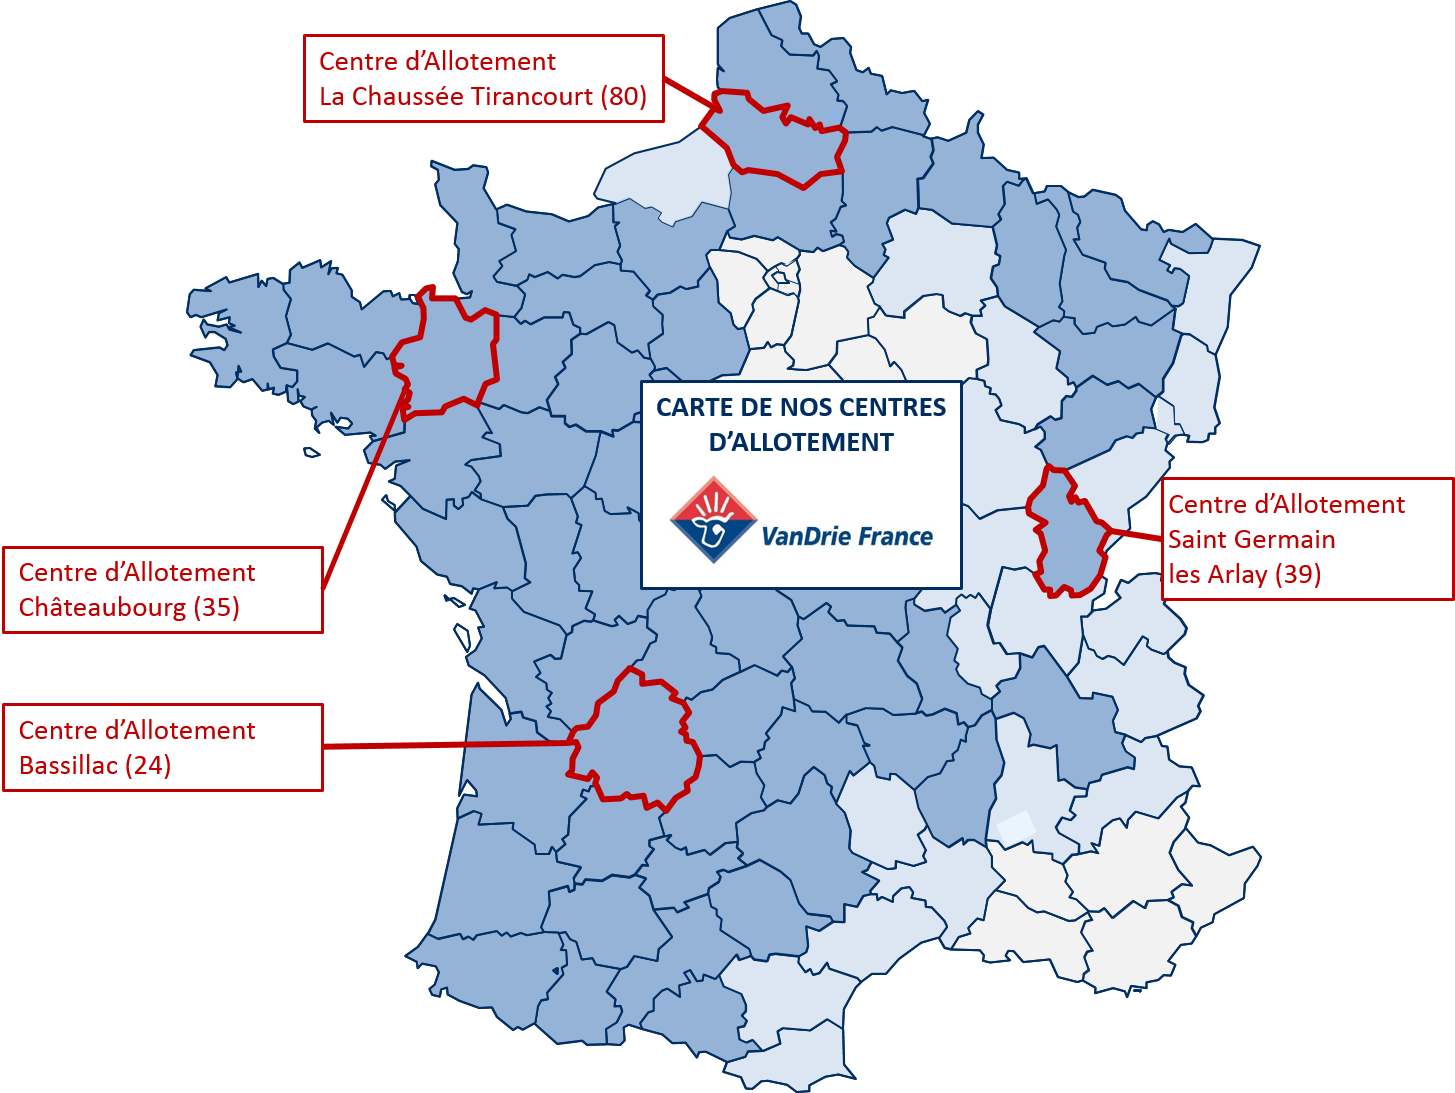 Carte des centres allotement